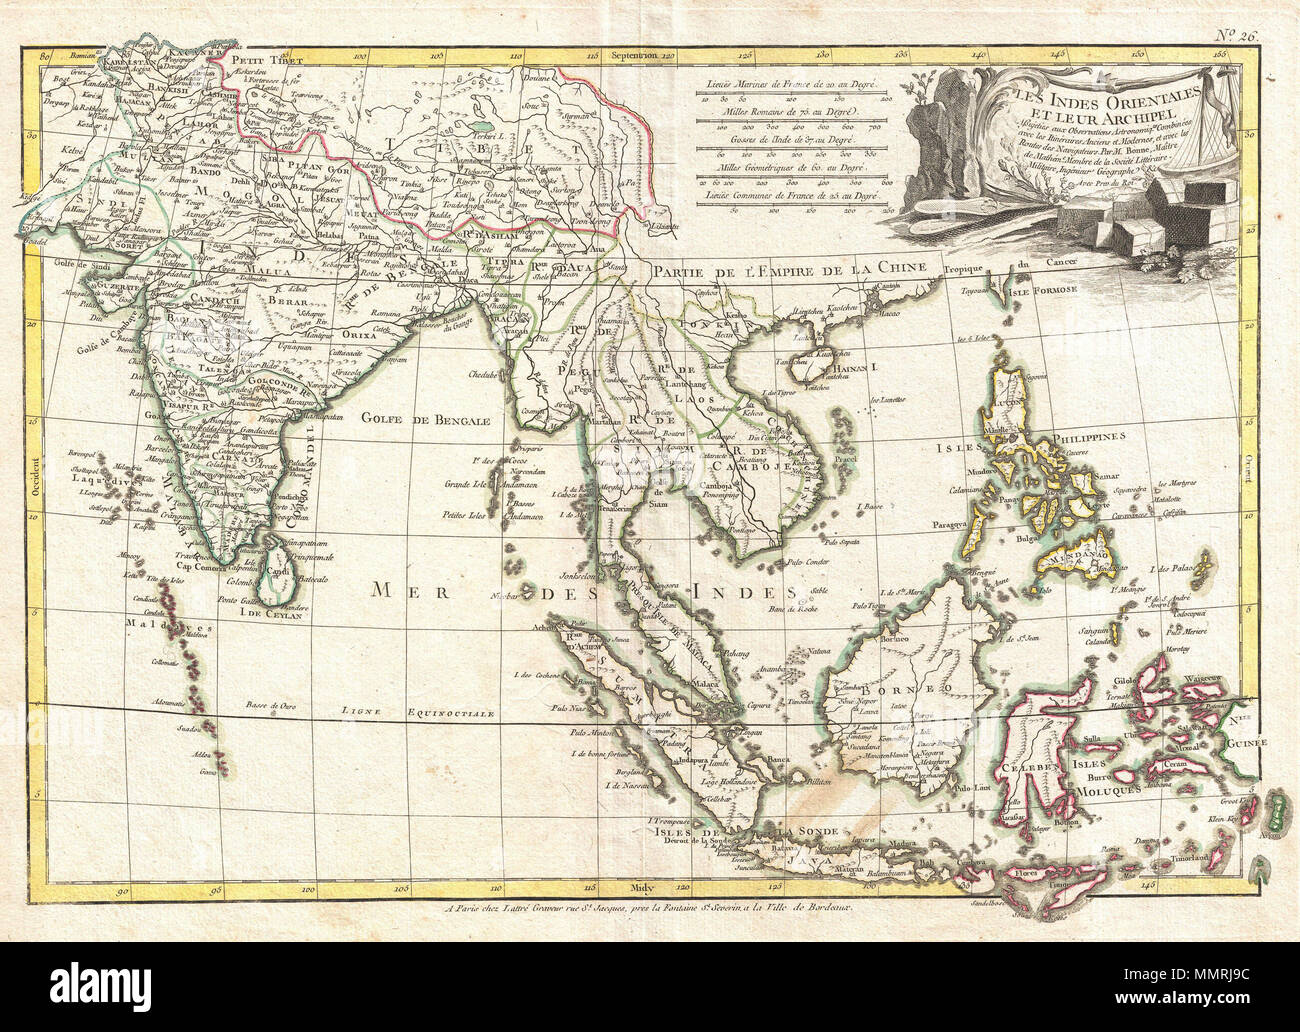 East Java Map Stockfotos & East Java Map Bilder - Seite 2 ...